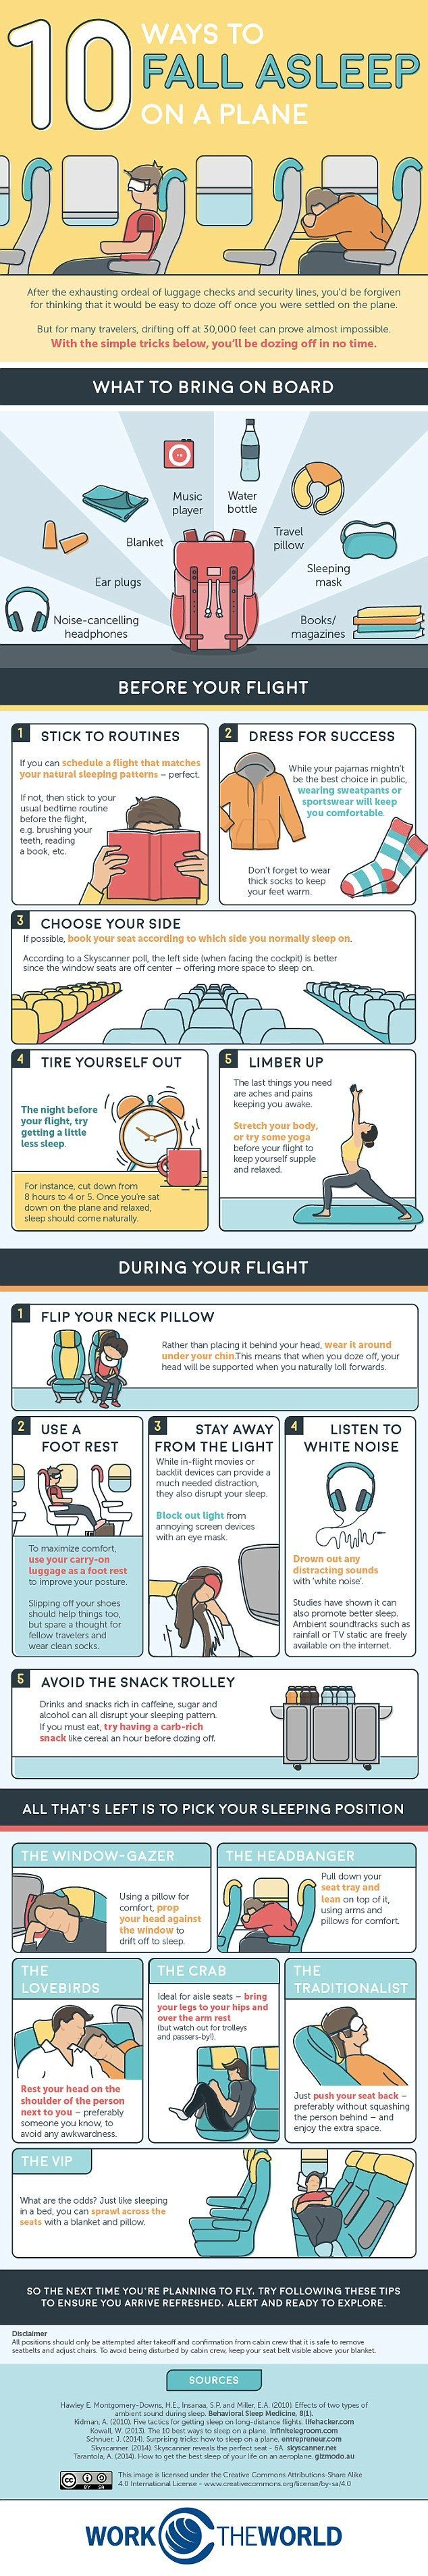 How to fall asleep on the plane: The ultimate guide | Daily Mail Online Travel Tips #travel #traveltips